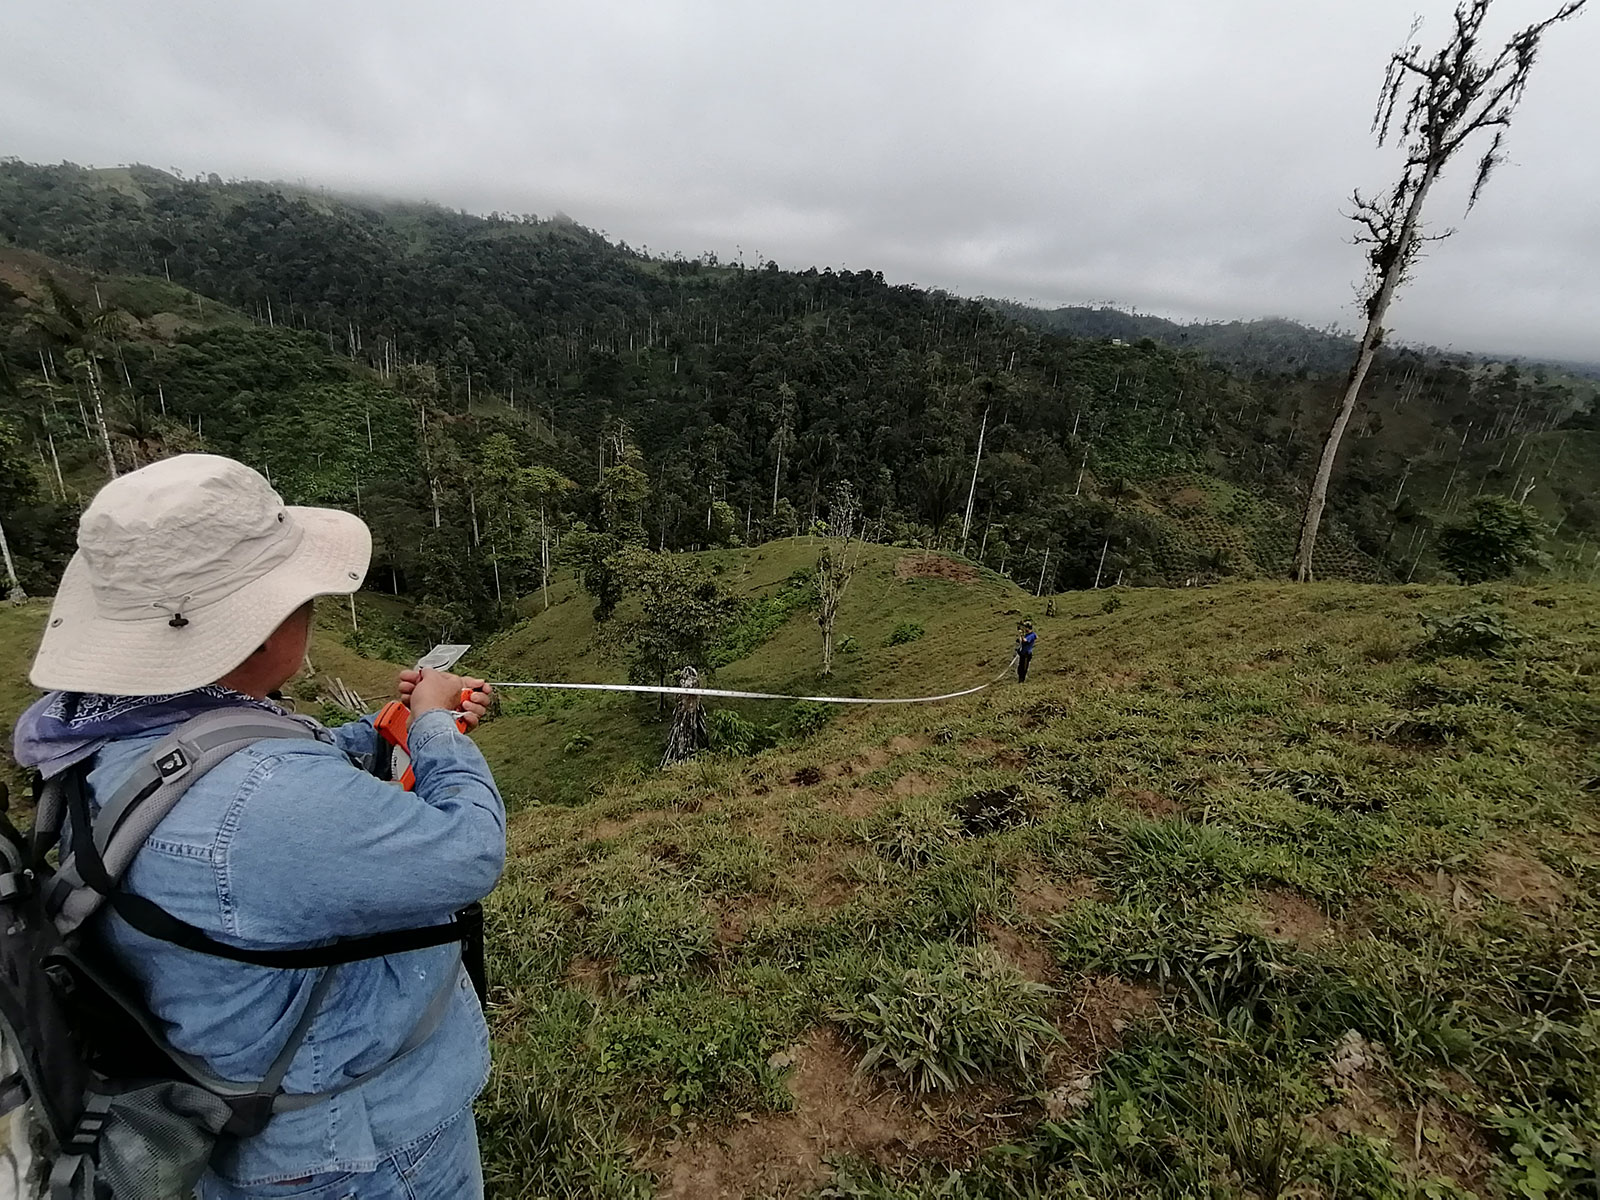 Two researchers measure a large distance where trees have been cleared from the forest